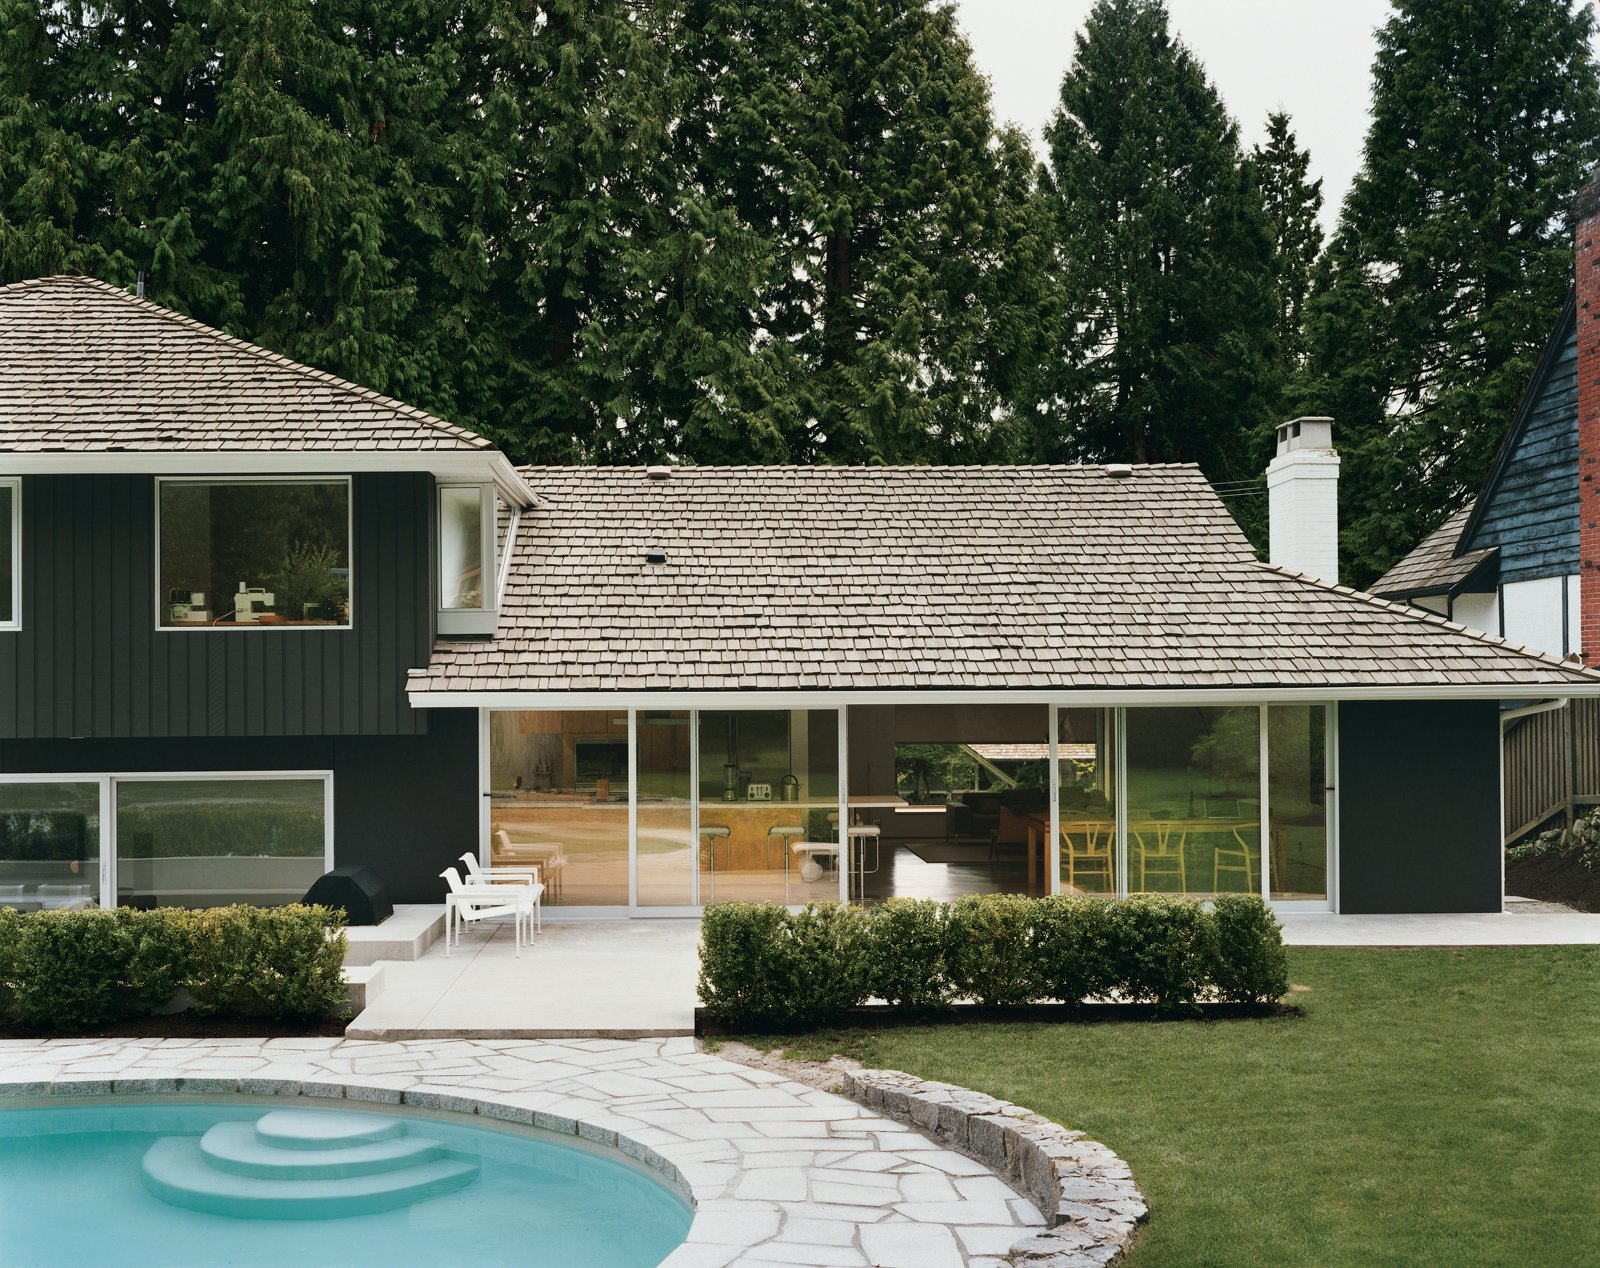 After trying dozens of colors, LeBlanc says, they settled on basic black for the exterior as   a way to best marry the building with its forest surroundings, which include 30-foot-high western red cedar trees. The pool is original; but the deck, once made of concrete, has been reclad in granite to match the old retaining wall.